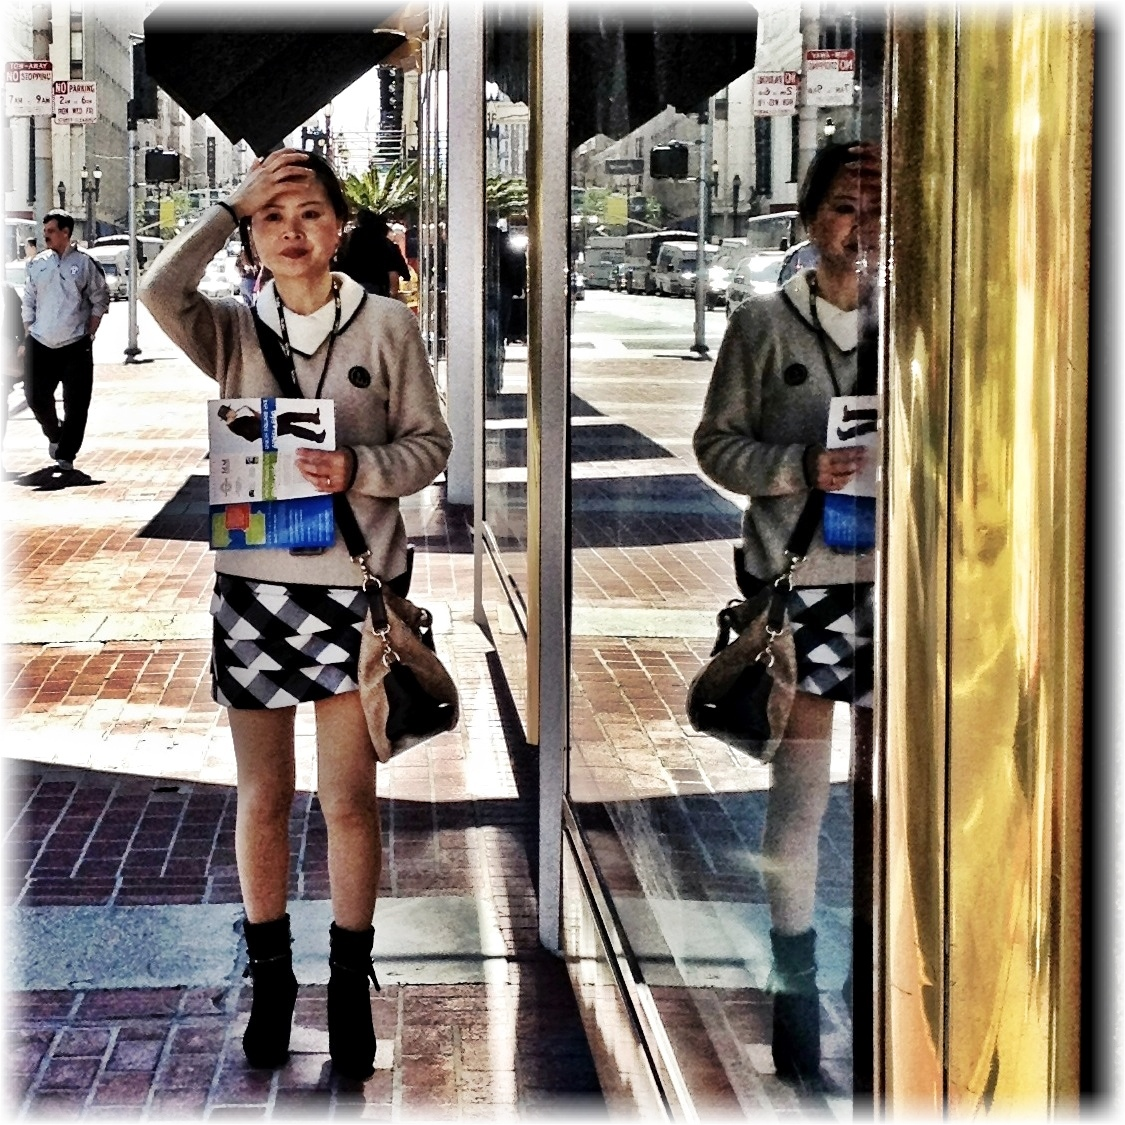 Photo: Mirror Image I love the hip fashion scene on the streets of San Francisco! Apps: Camera+, PicFX, Photogene2  #iPhoneography #streetphotography #SanFrancisco